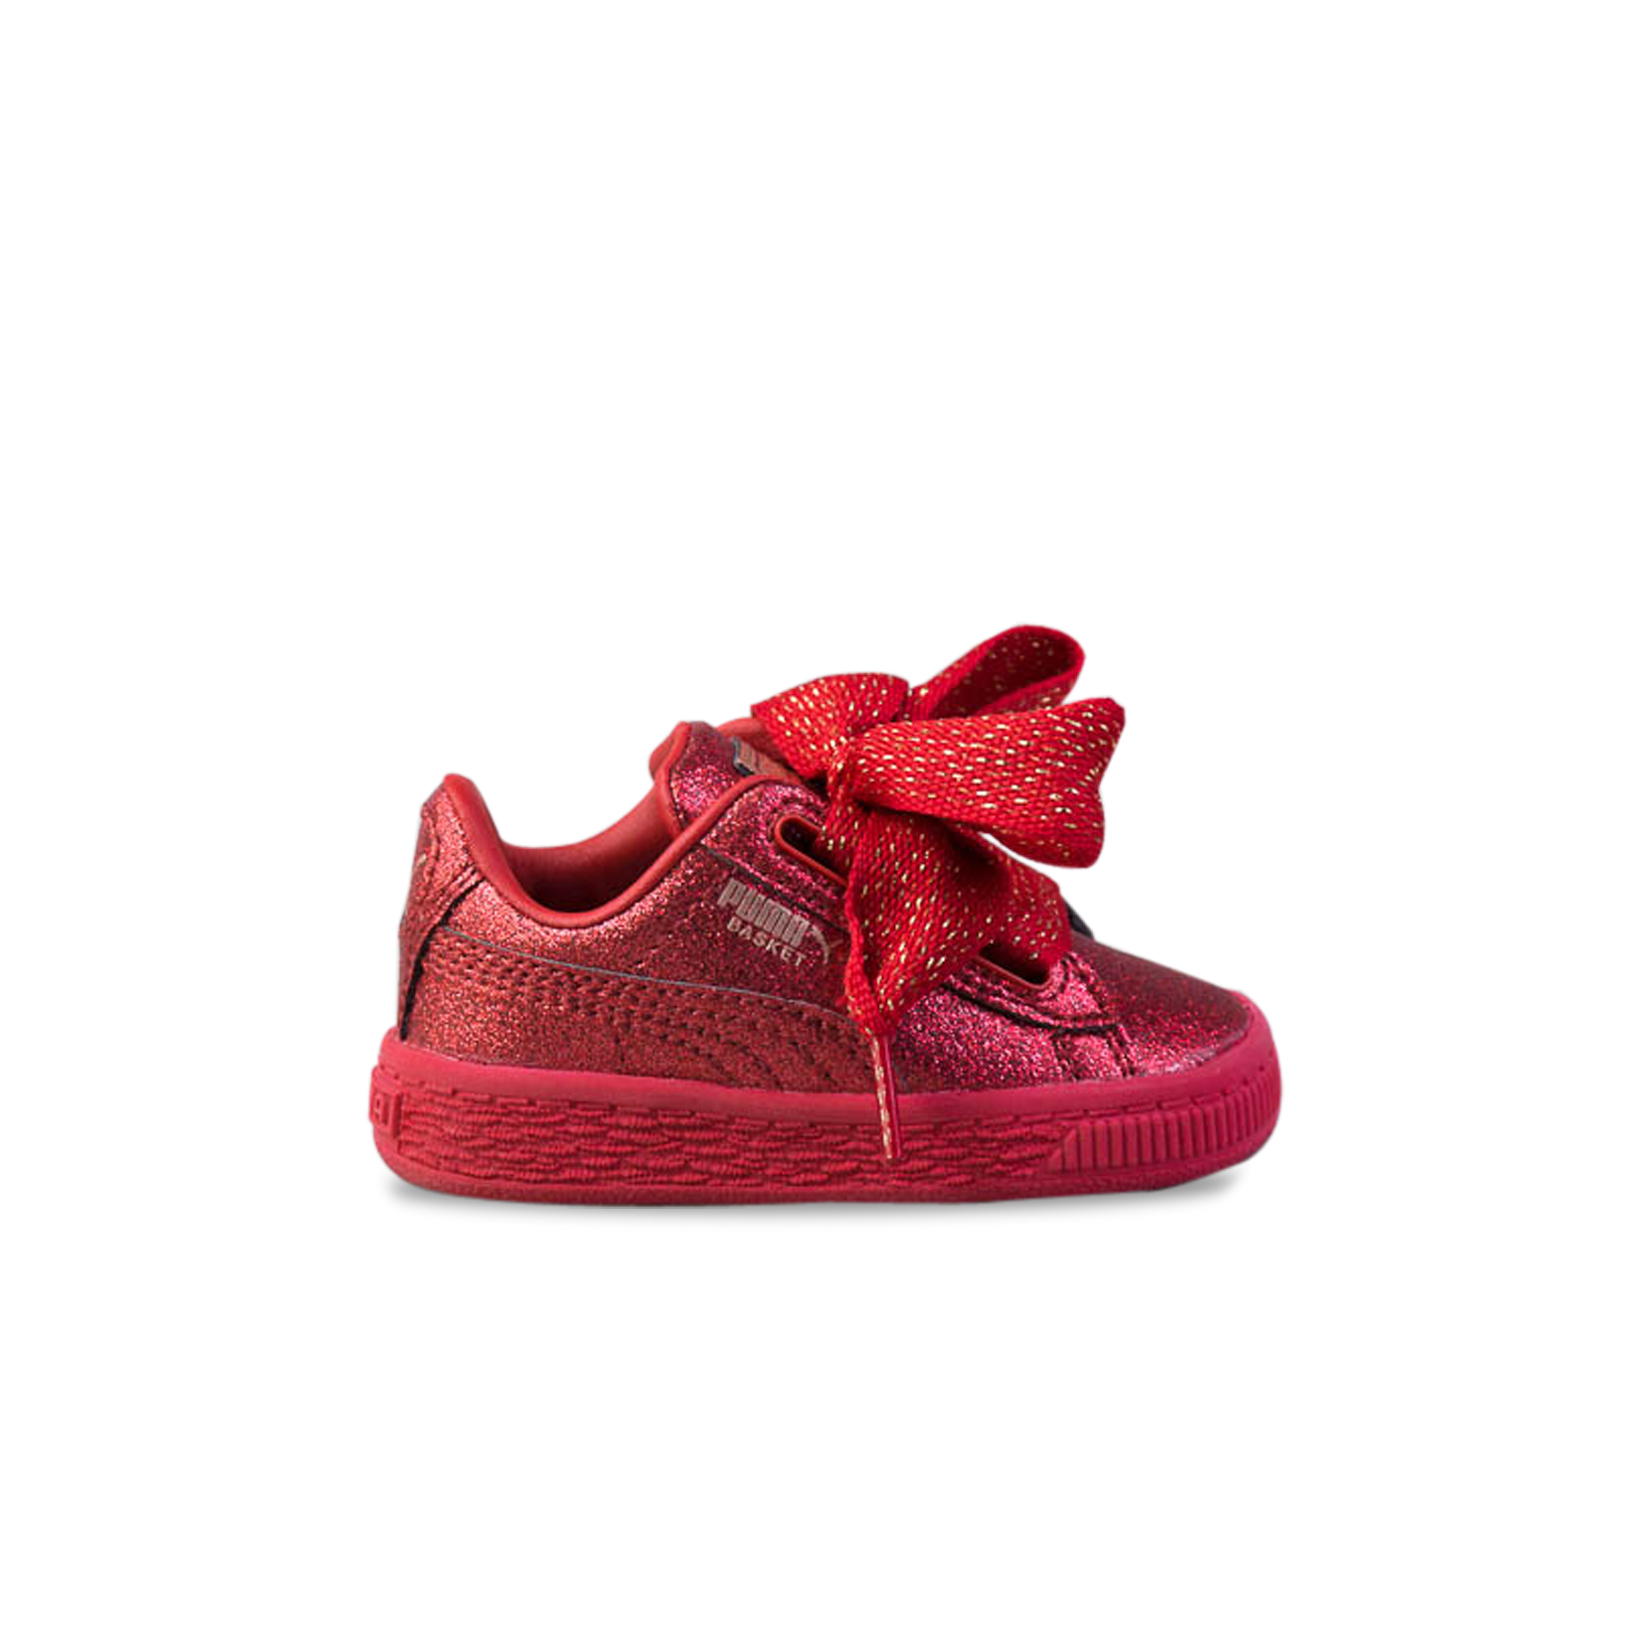 sports shoes 2ddde df944 Baby's Shoes Puma Basket Heart Holiday Glamour Red| All ...